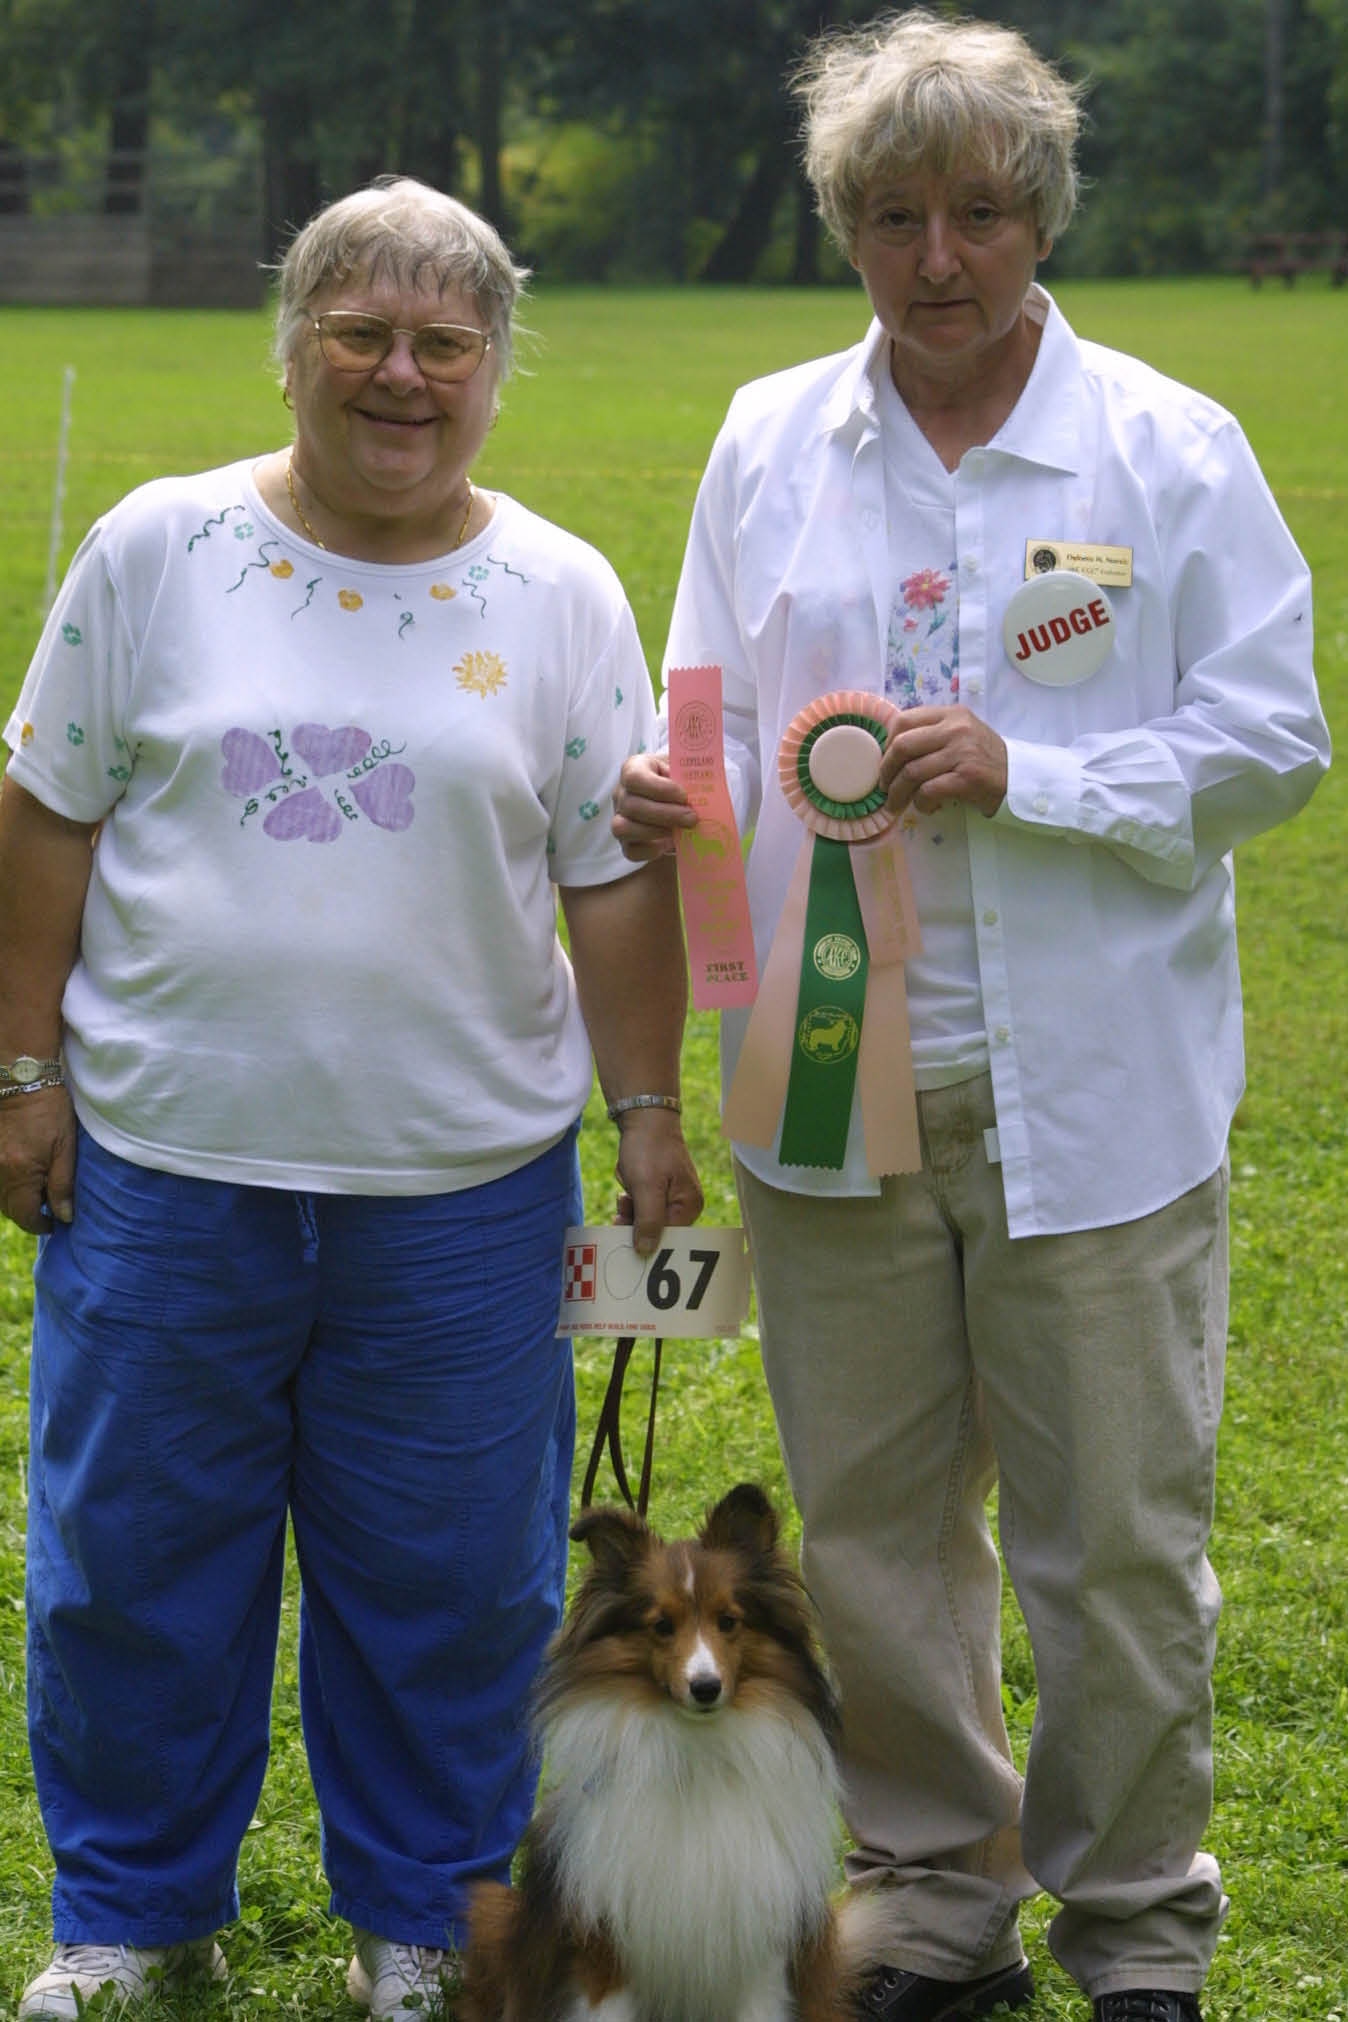 Dodi Remen, Rory Reddog, and our Judge, Delores Norsic